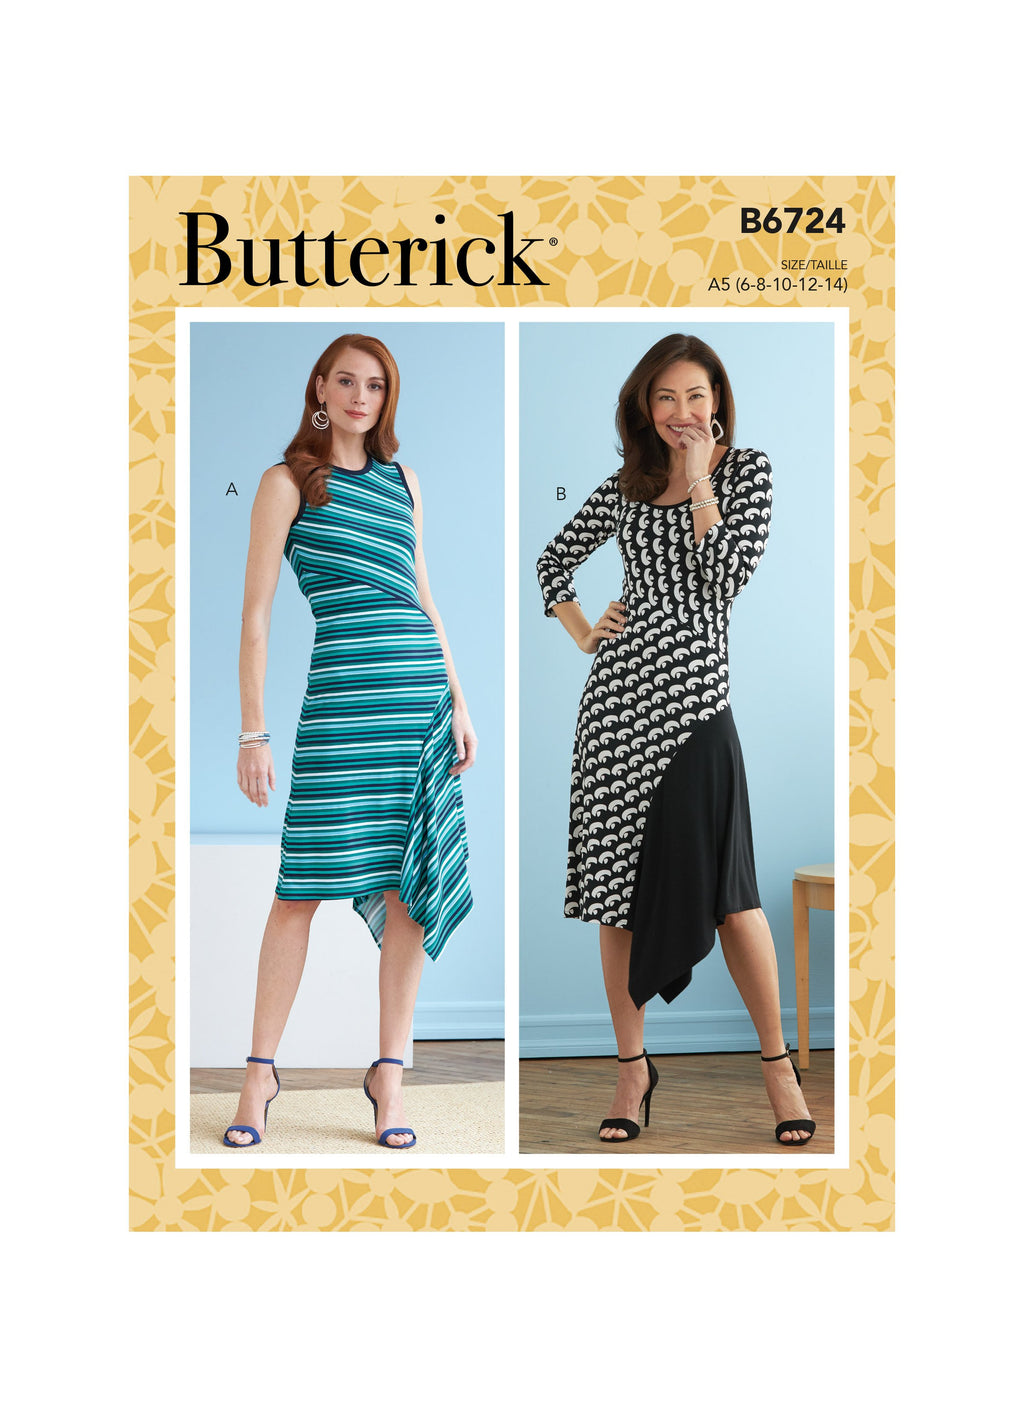 Butterick Sewing Pattern 6724 Misses' Dresses